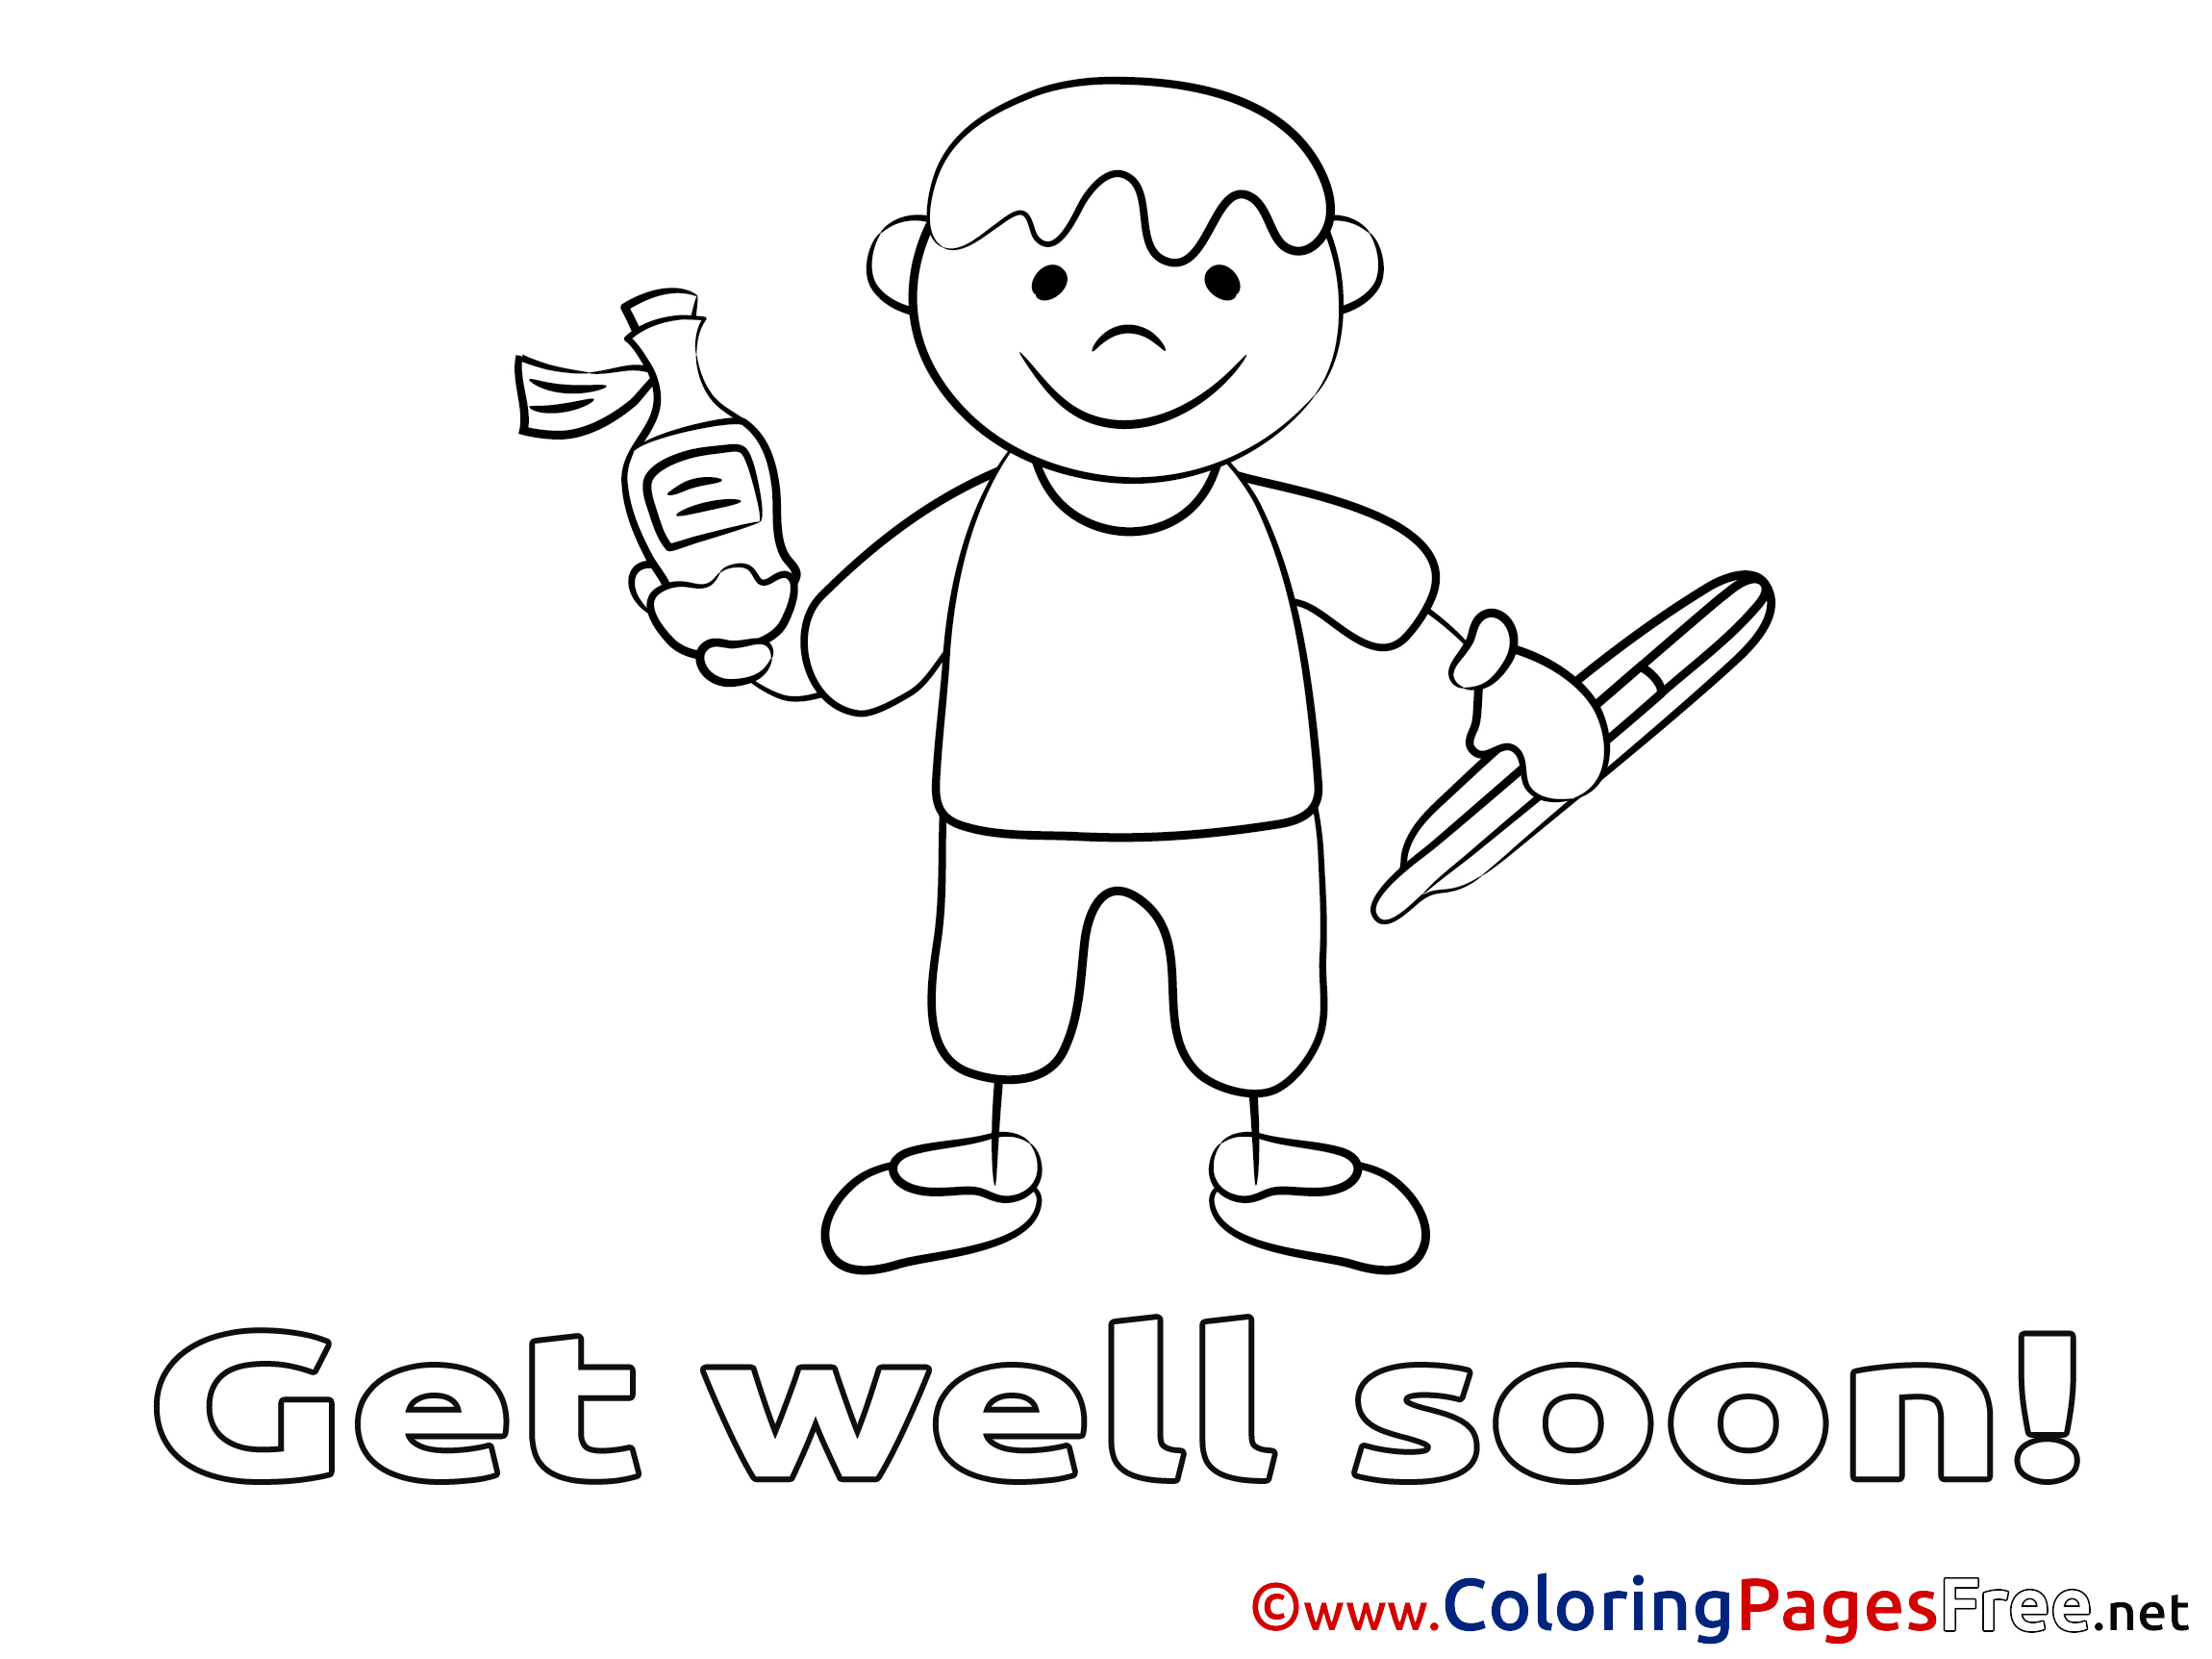 get well soon coloring pages christian corpedo com